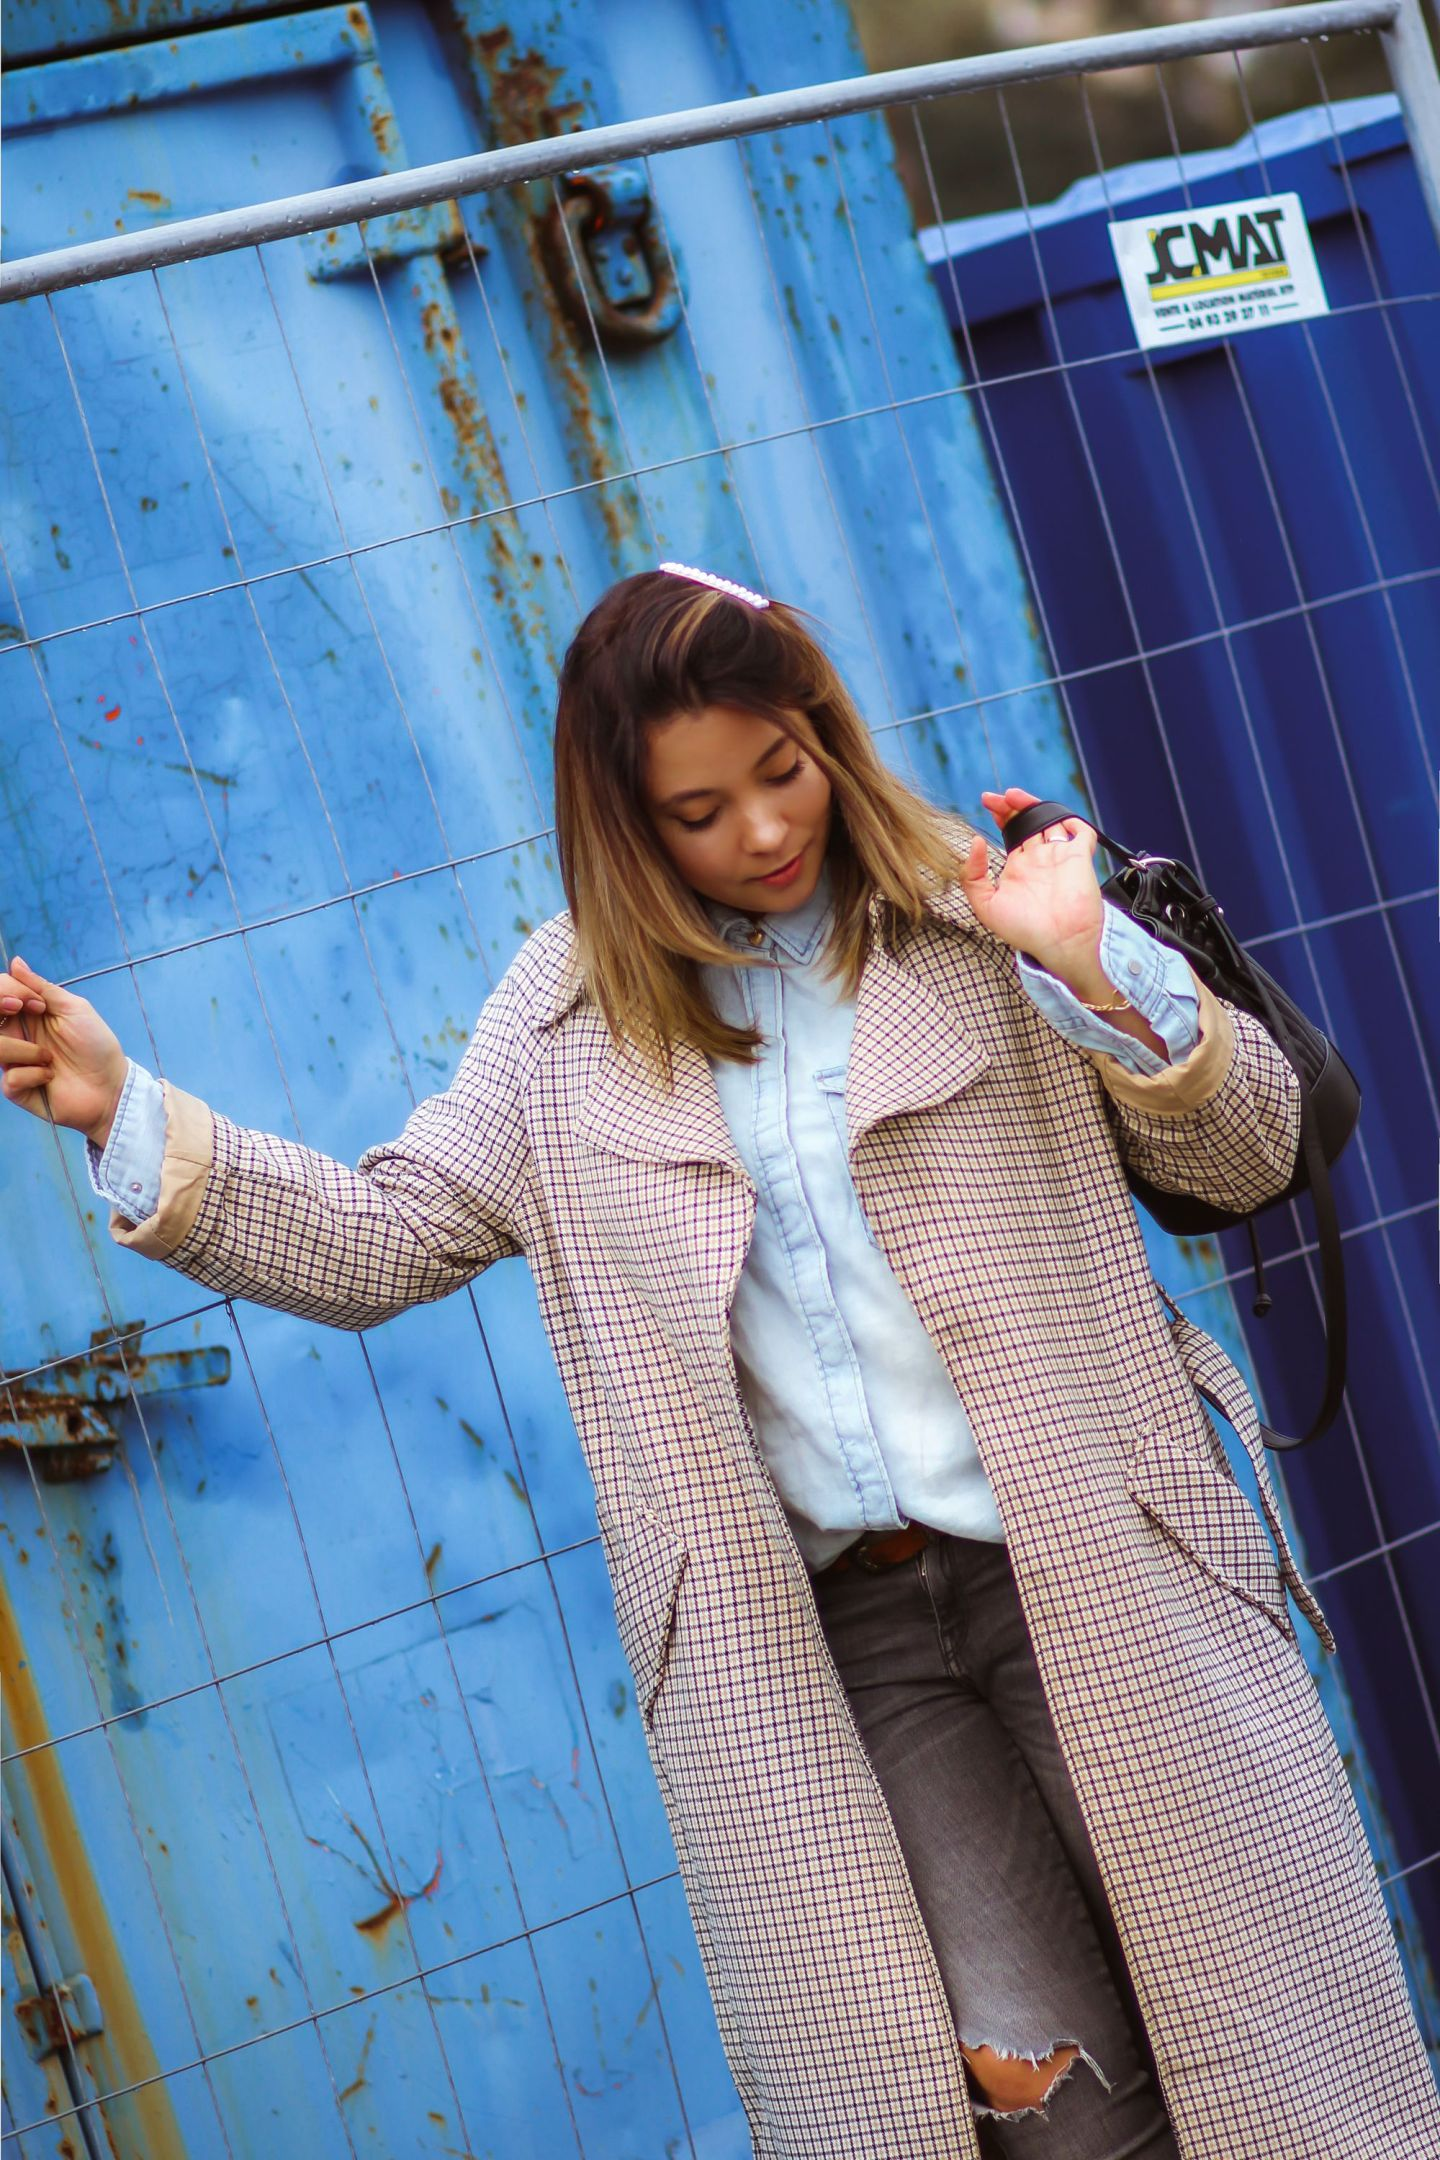 denim look & trench a carreaux, blog mode, blogueuse mode, trench carreaux femme, trench femme, tendances mode, the green ananas, pinterest mode, sac sceau, tendance jean, jeans, boots santiags, zara, h&m